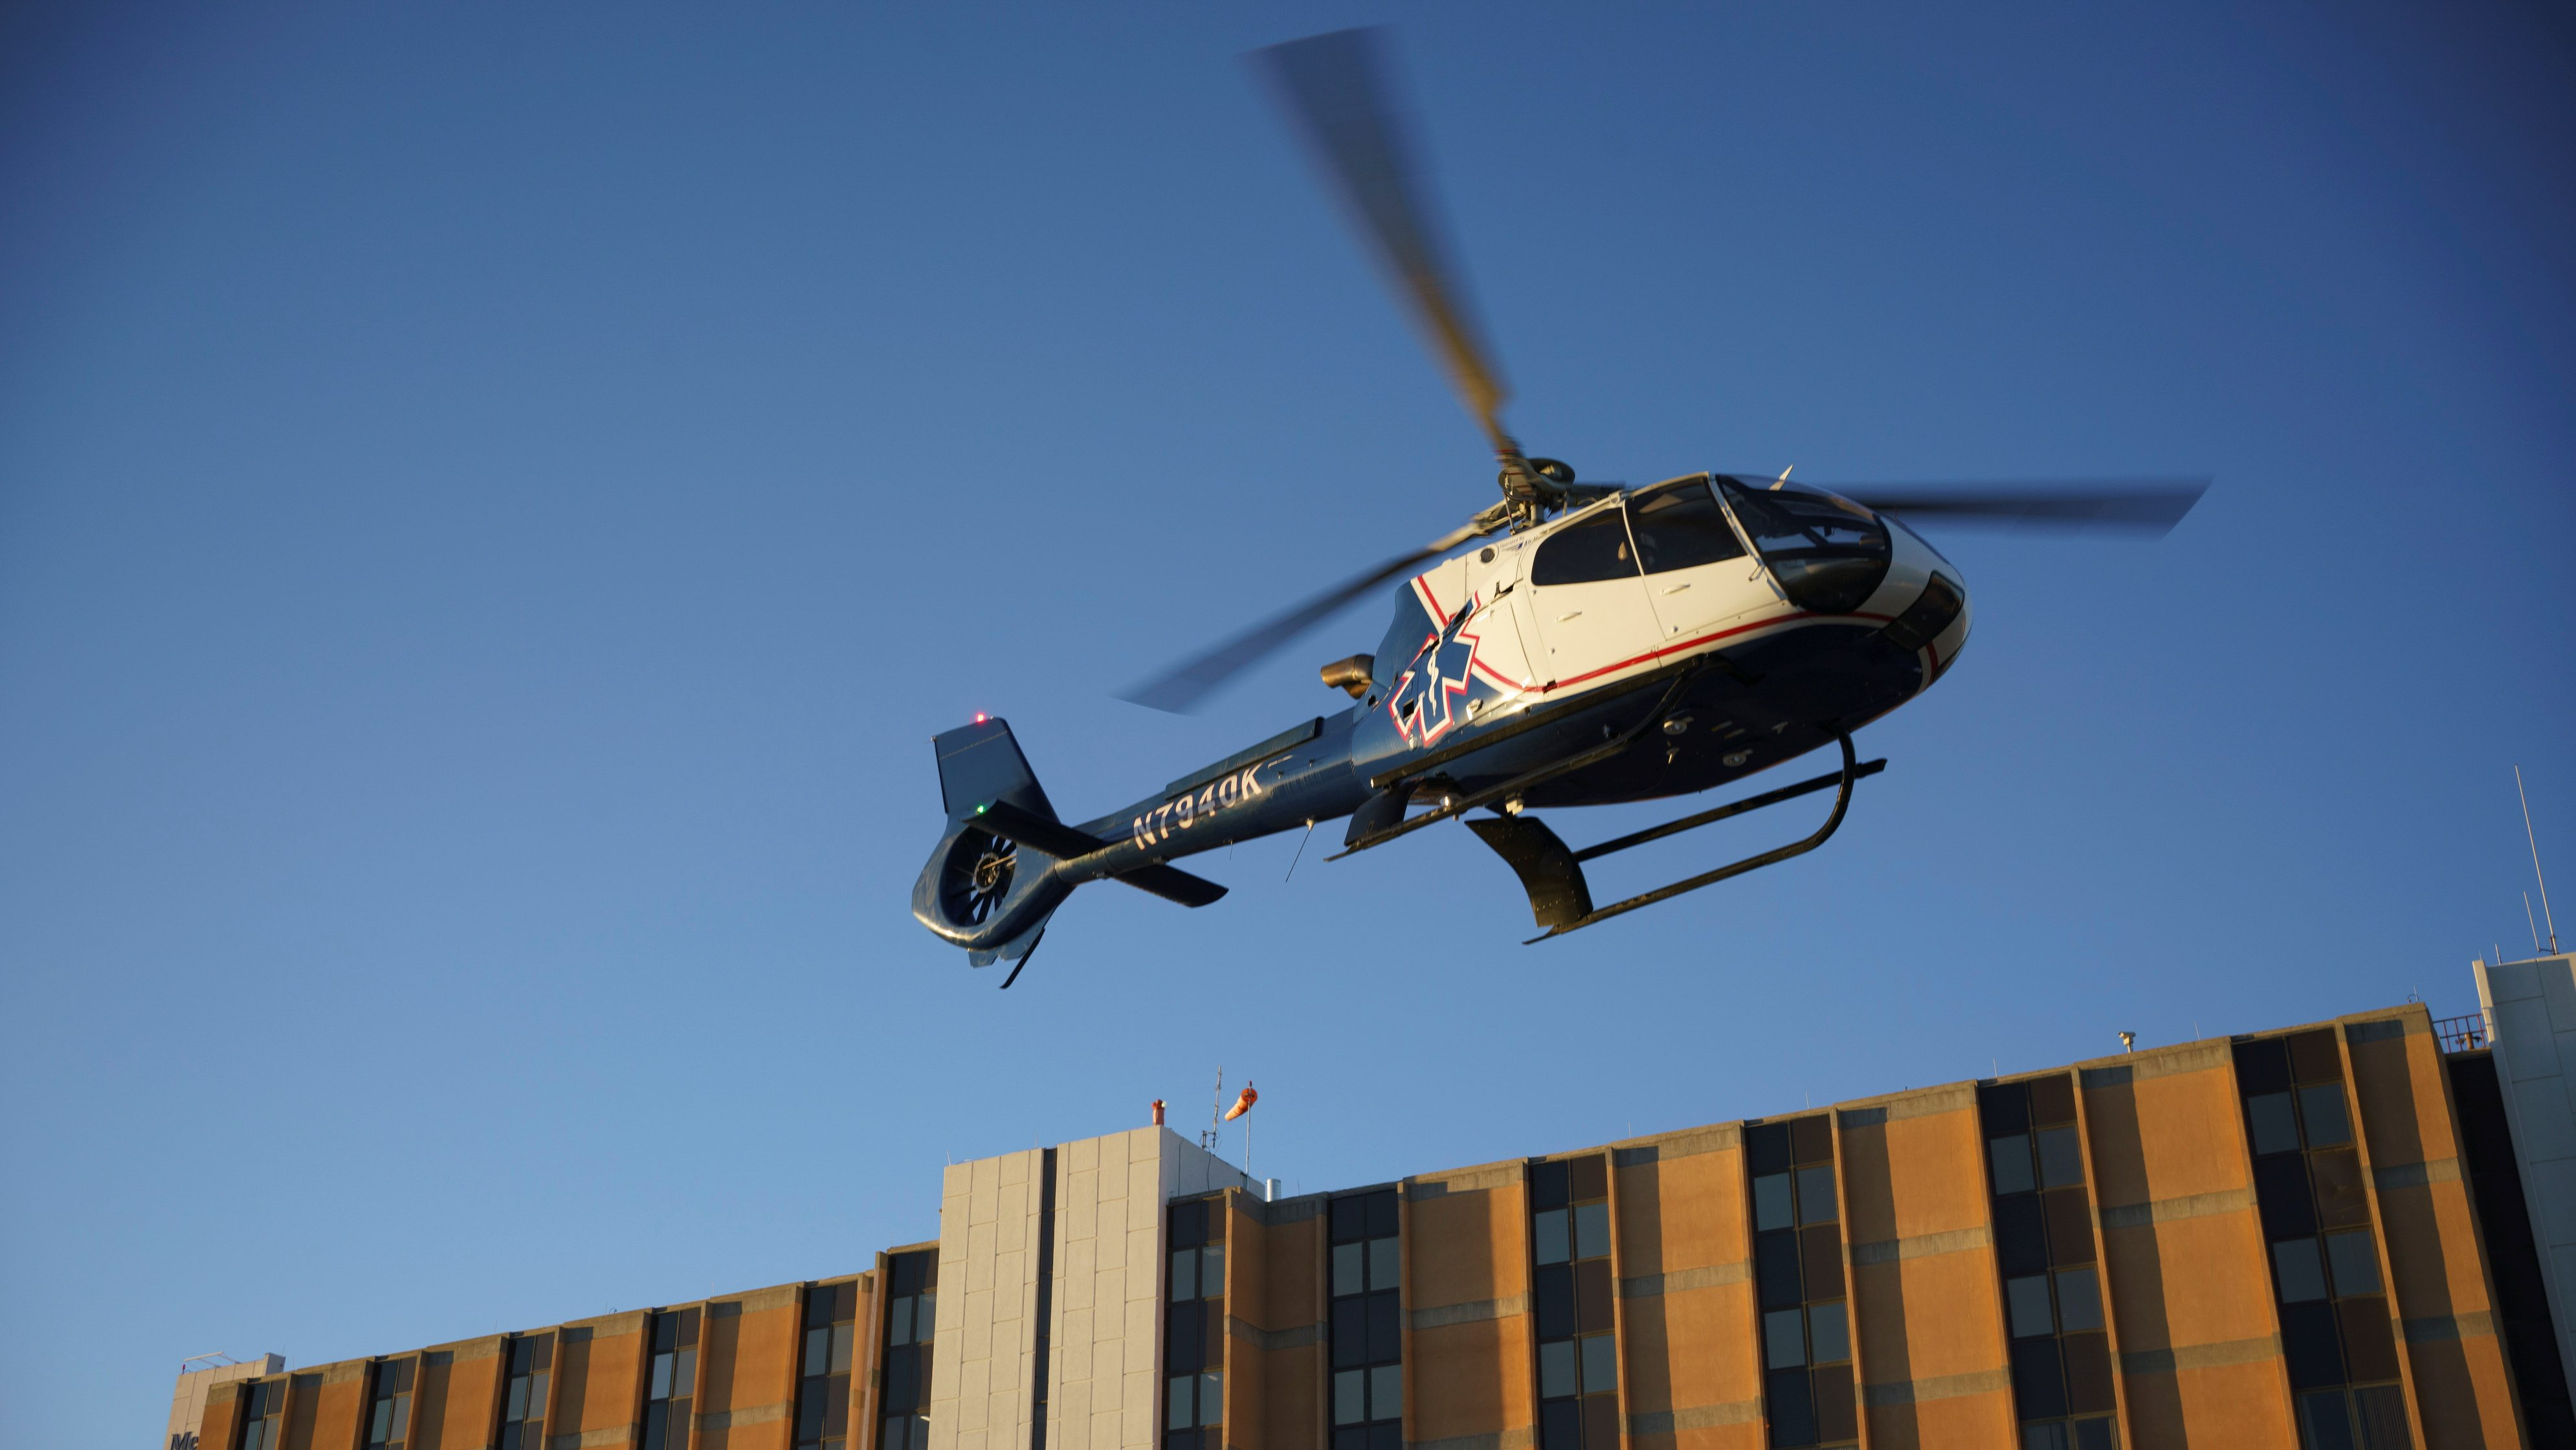 An air ambulance helicopter takes off from Memorial Medical Center during a surge of coronavirus disease (COVID-19) cases in Las Cruces